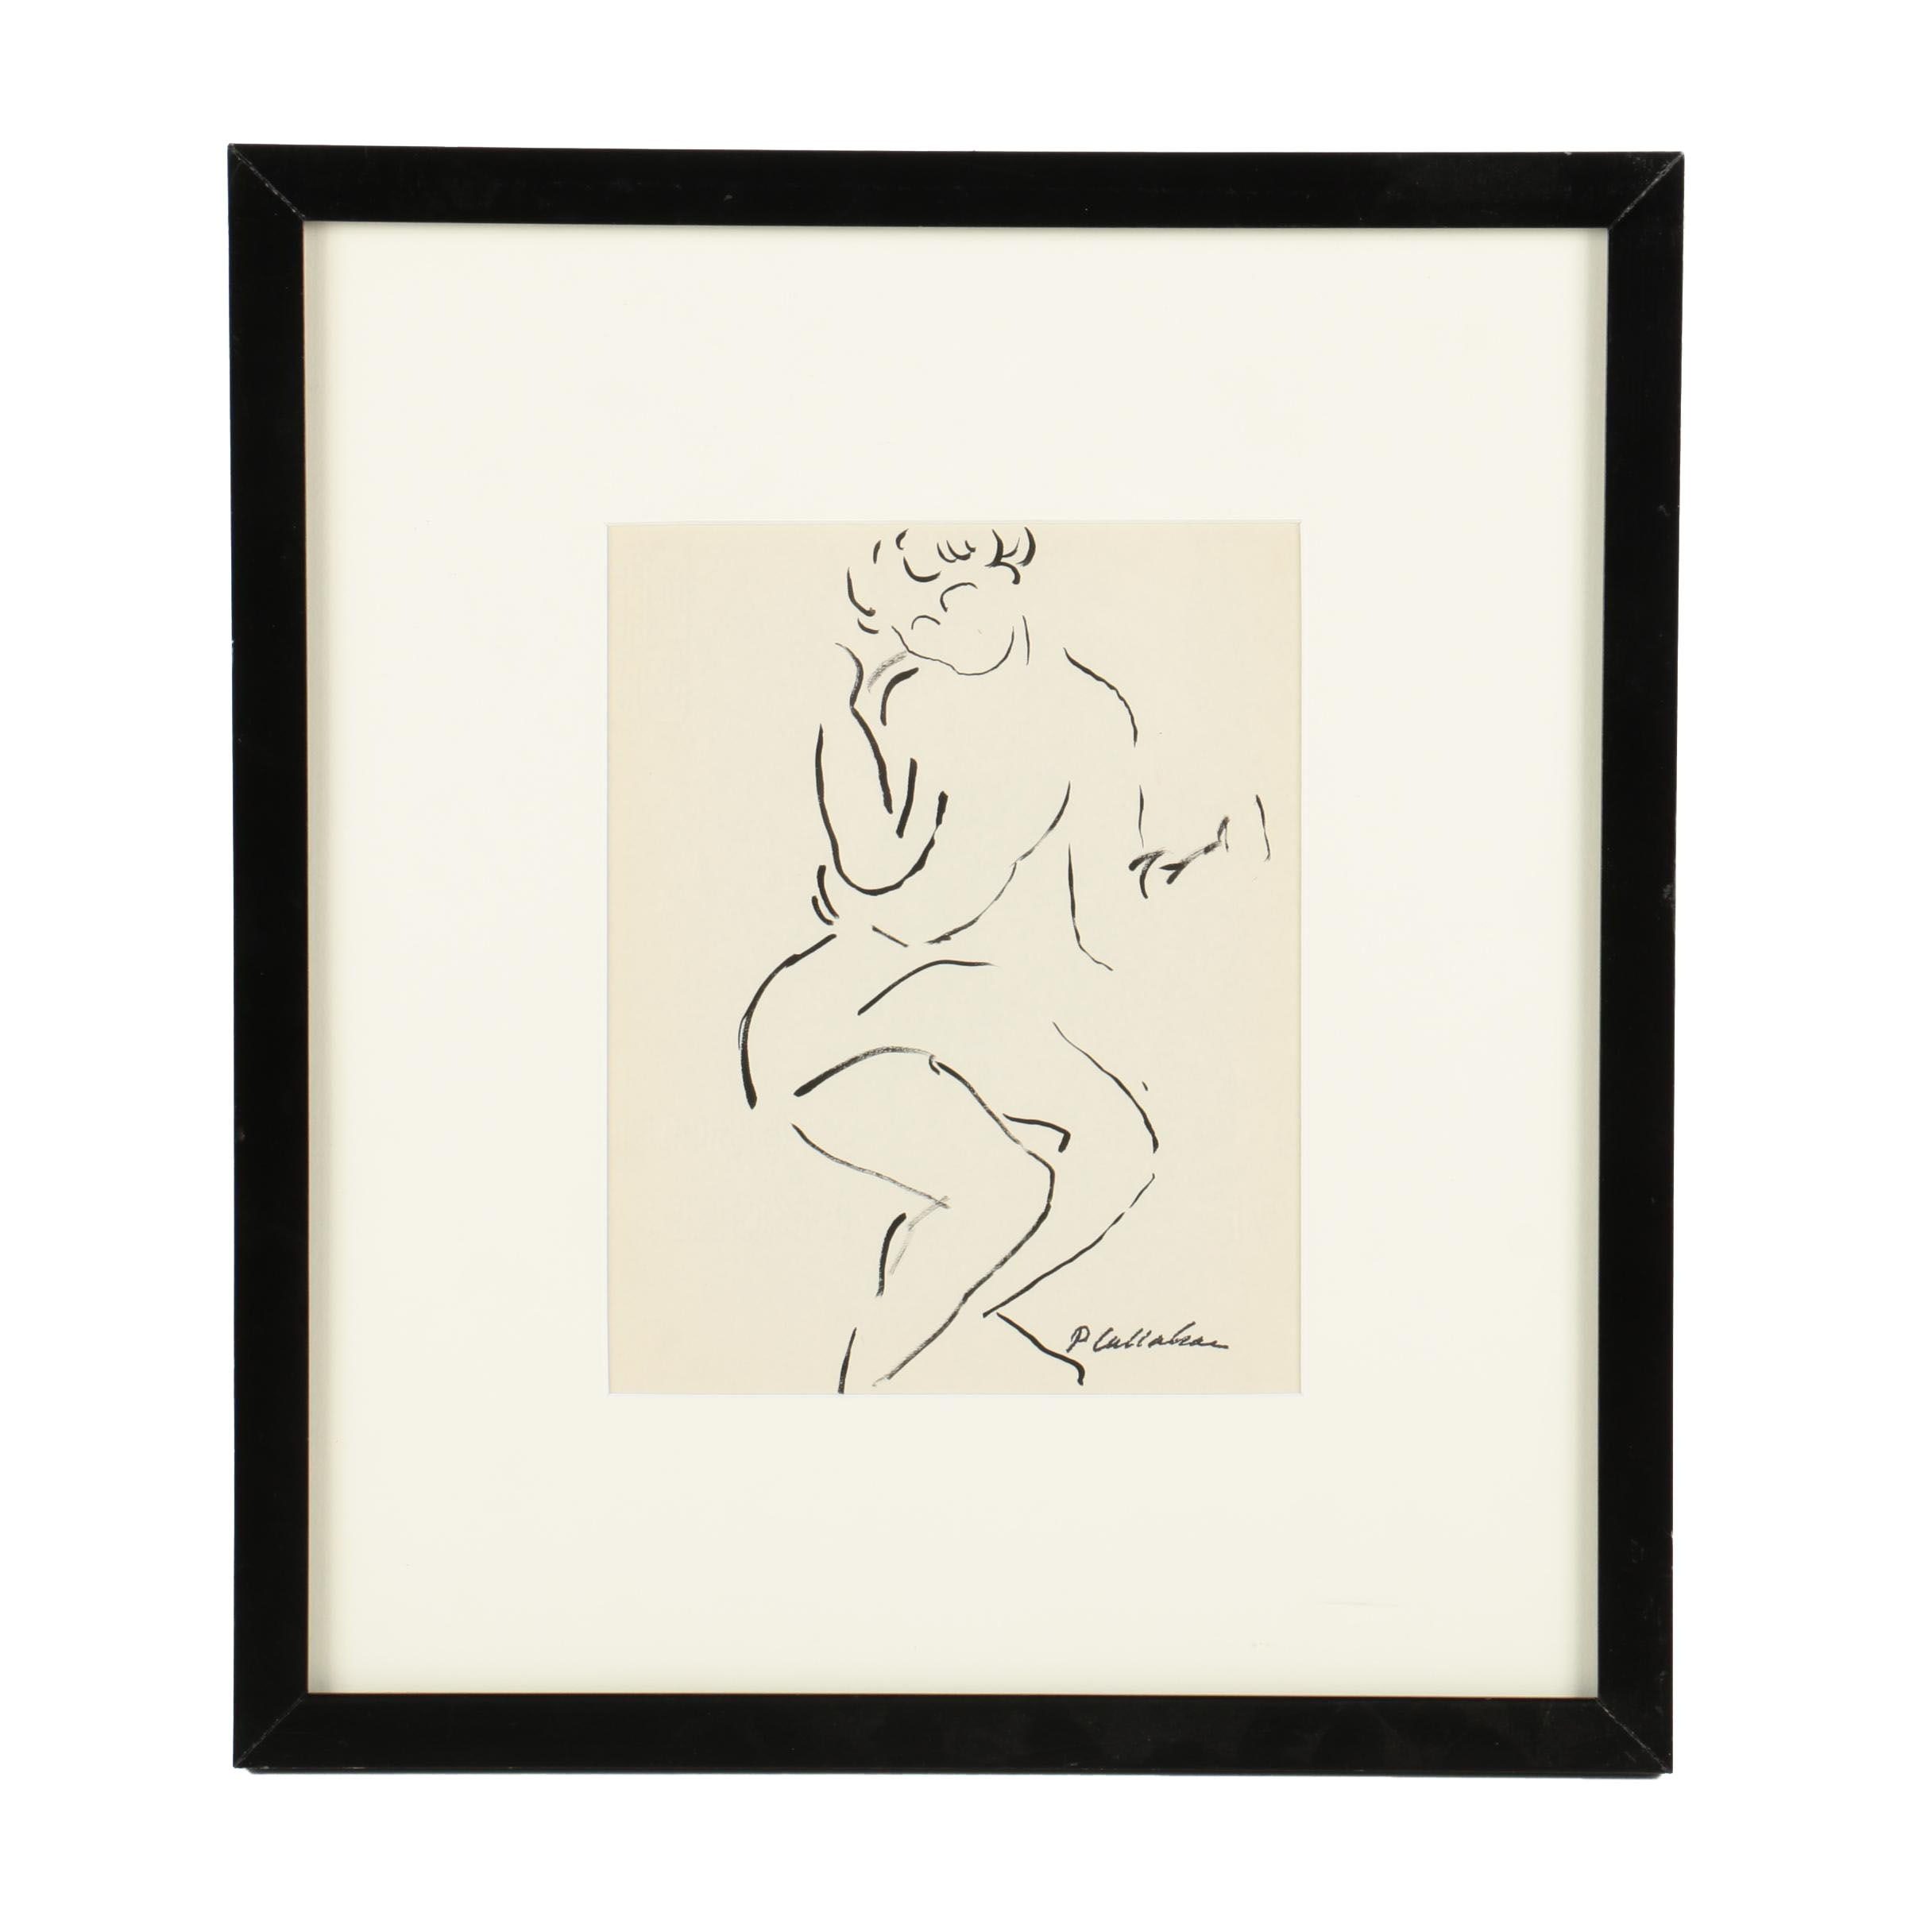 Phillip Callahan Ink Drawing on Paper of Abstract Female Figure